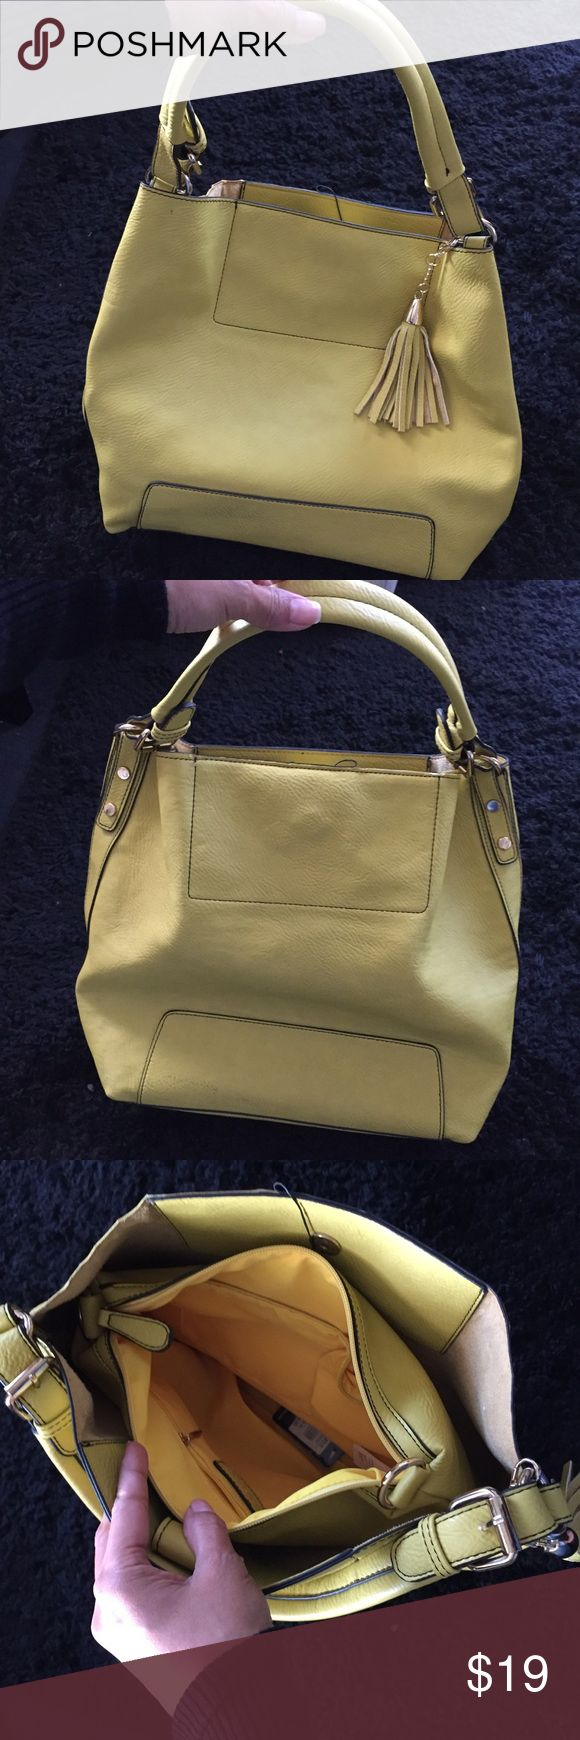 """Yellow hobo bag by Oasis woman's tote handbag Height: 12.5"""" ( not including strap) Width: 15""""  Included removable shoulder strap and dust bag. Super cute and brightens up any outfit! 🌟. Bundle to save $$ aloha!! 🌺😁🌺🌴 Oasis Bags Hobos"""